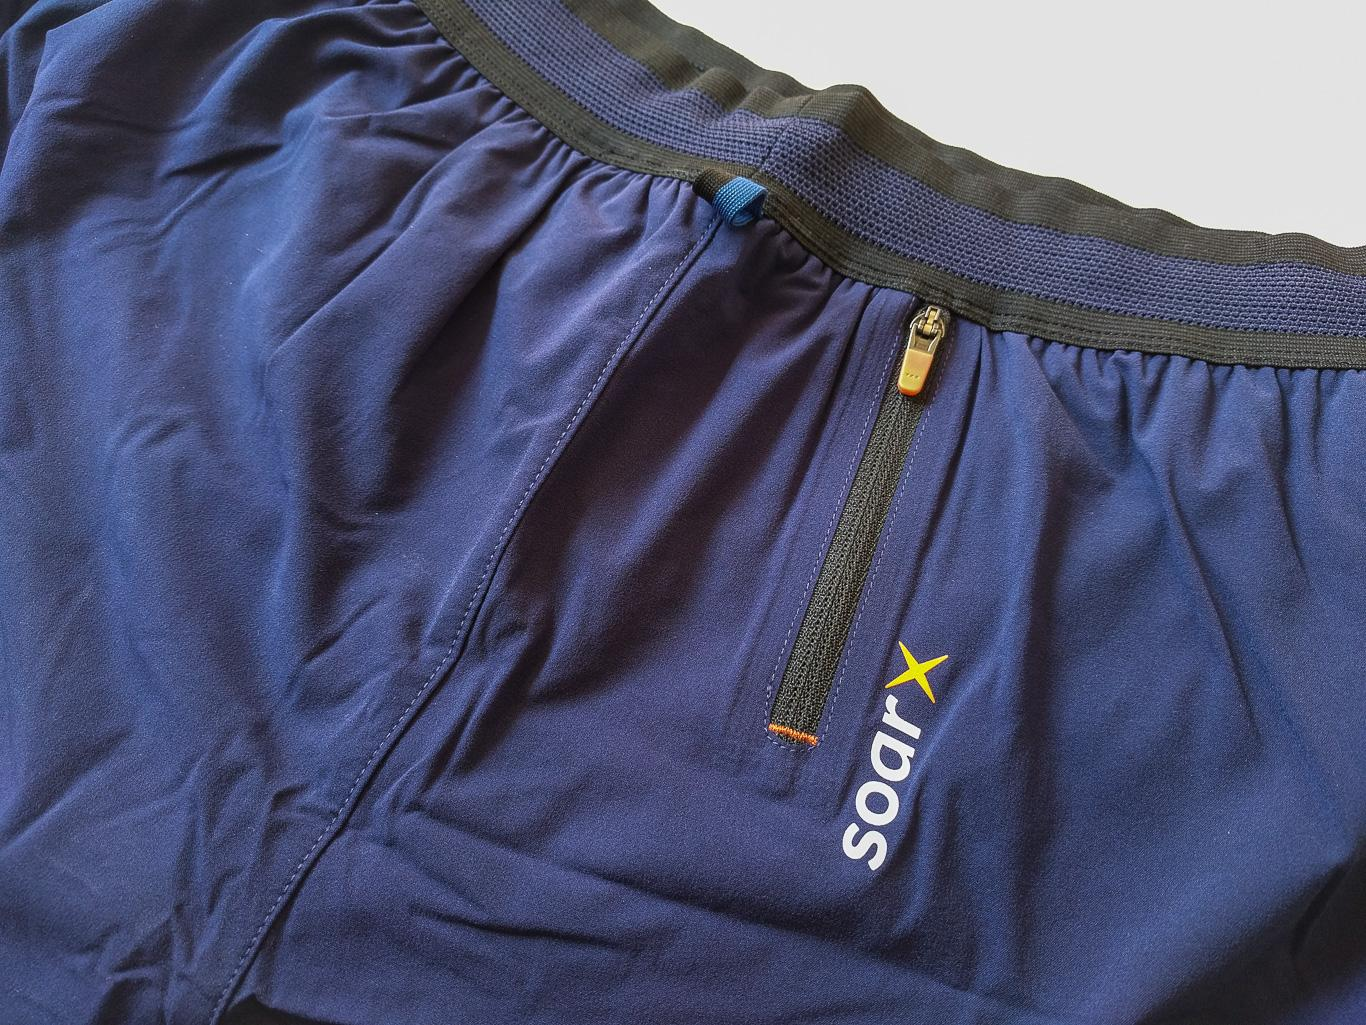 Soar Race Short